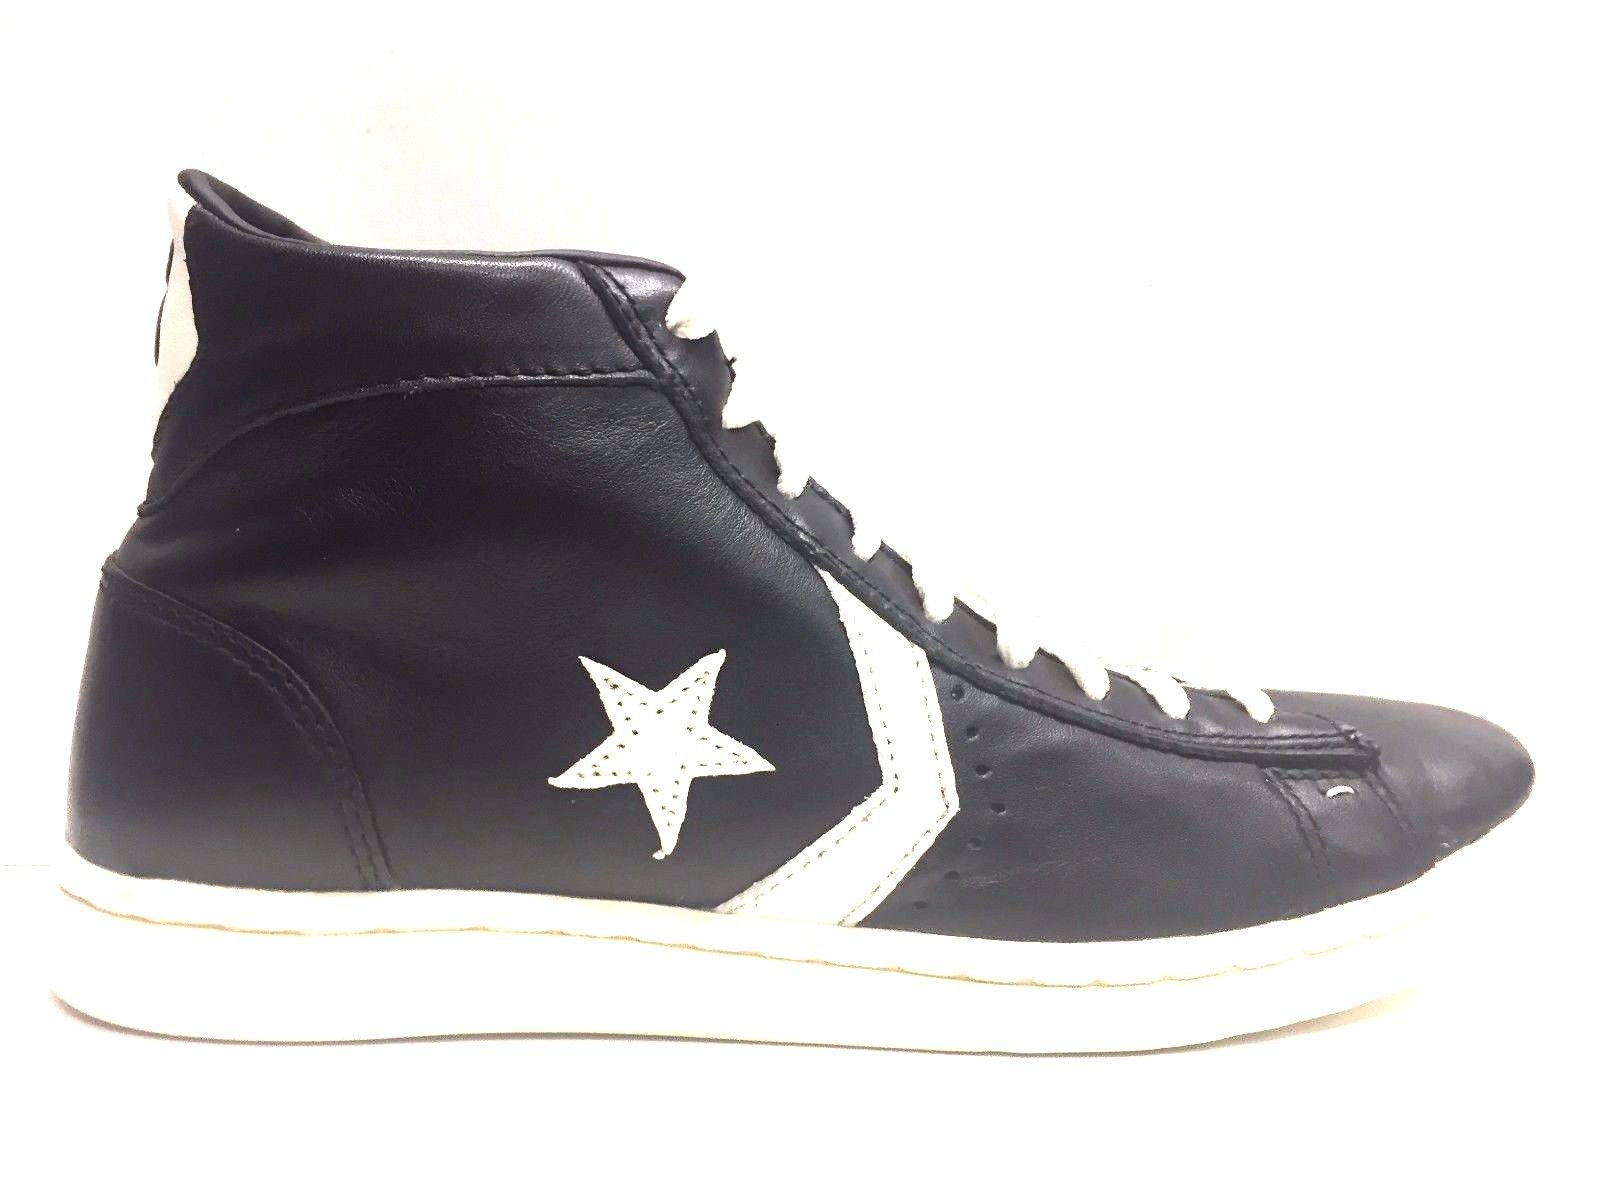 SCARPE SNEAKERS DONNA UOMO CONVERSE ALL STAR ORIGINAL PRO 128145C PELLE A/I NEW